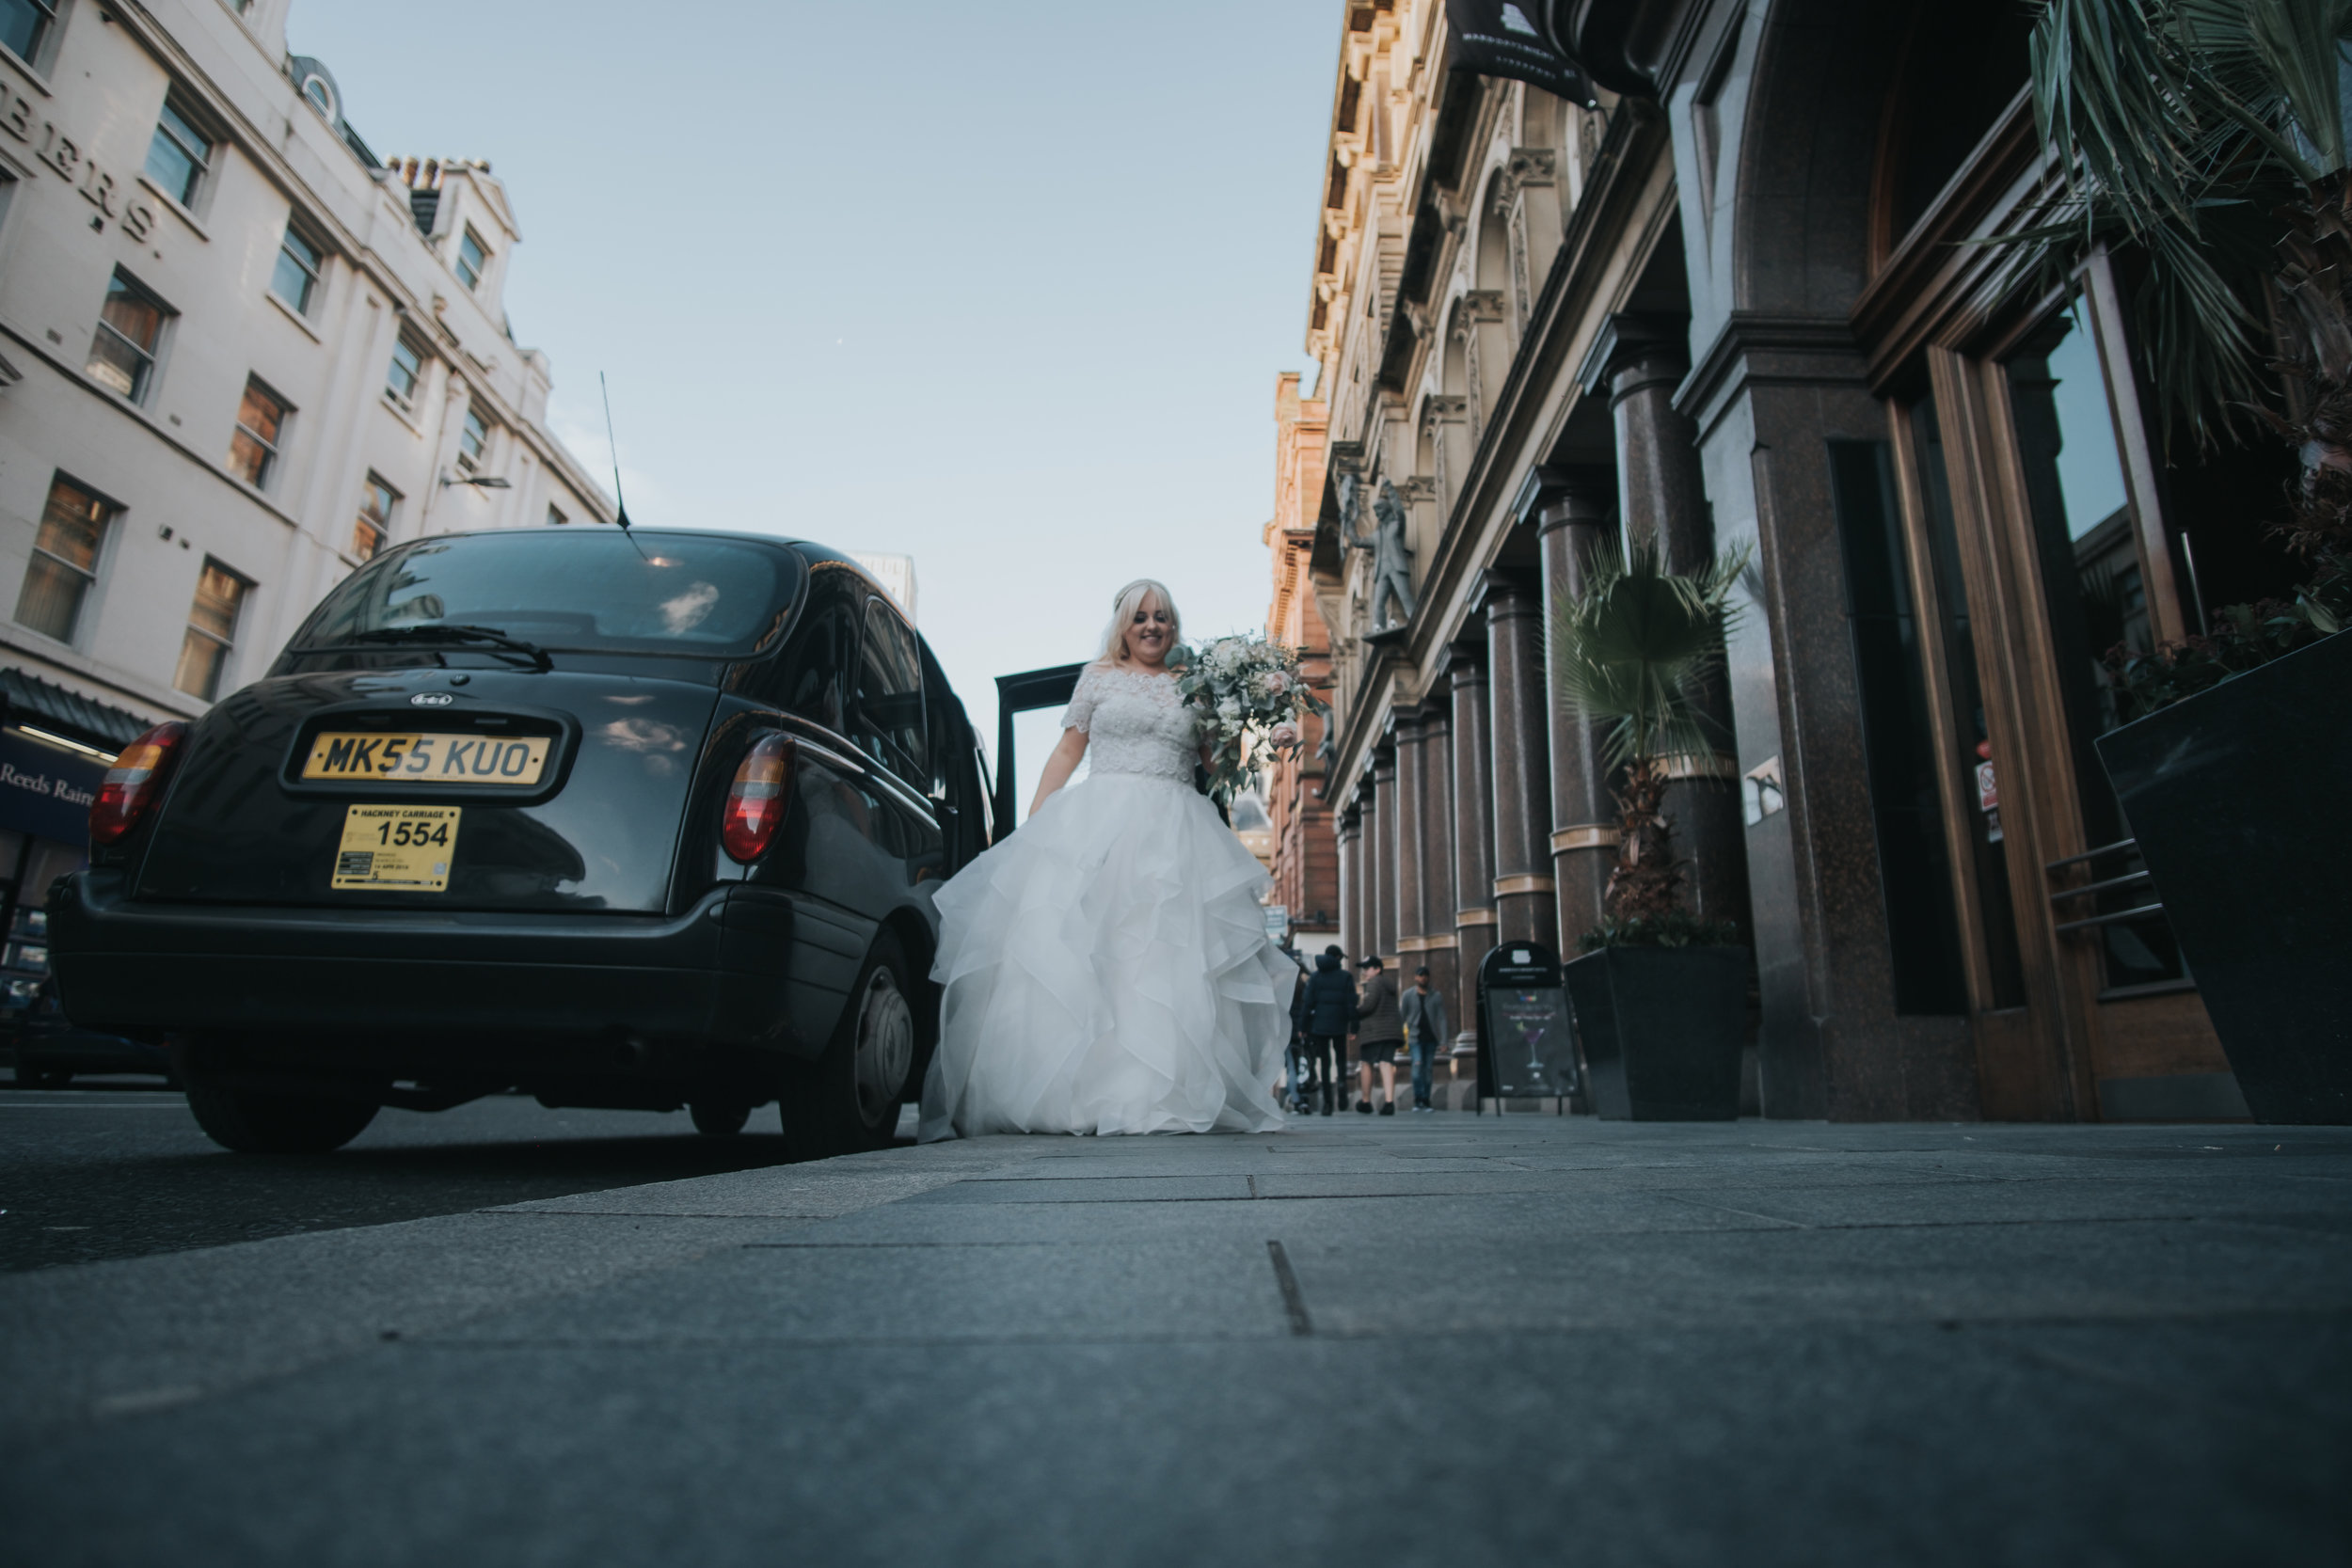 Modern and fashonable city centre wedding at the hard days night hotel in liverpool north west engand (39 of 54).jpg